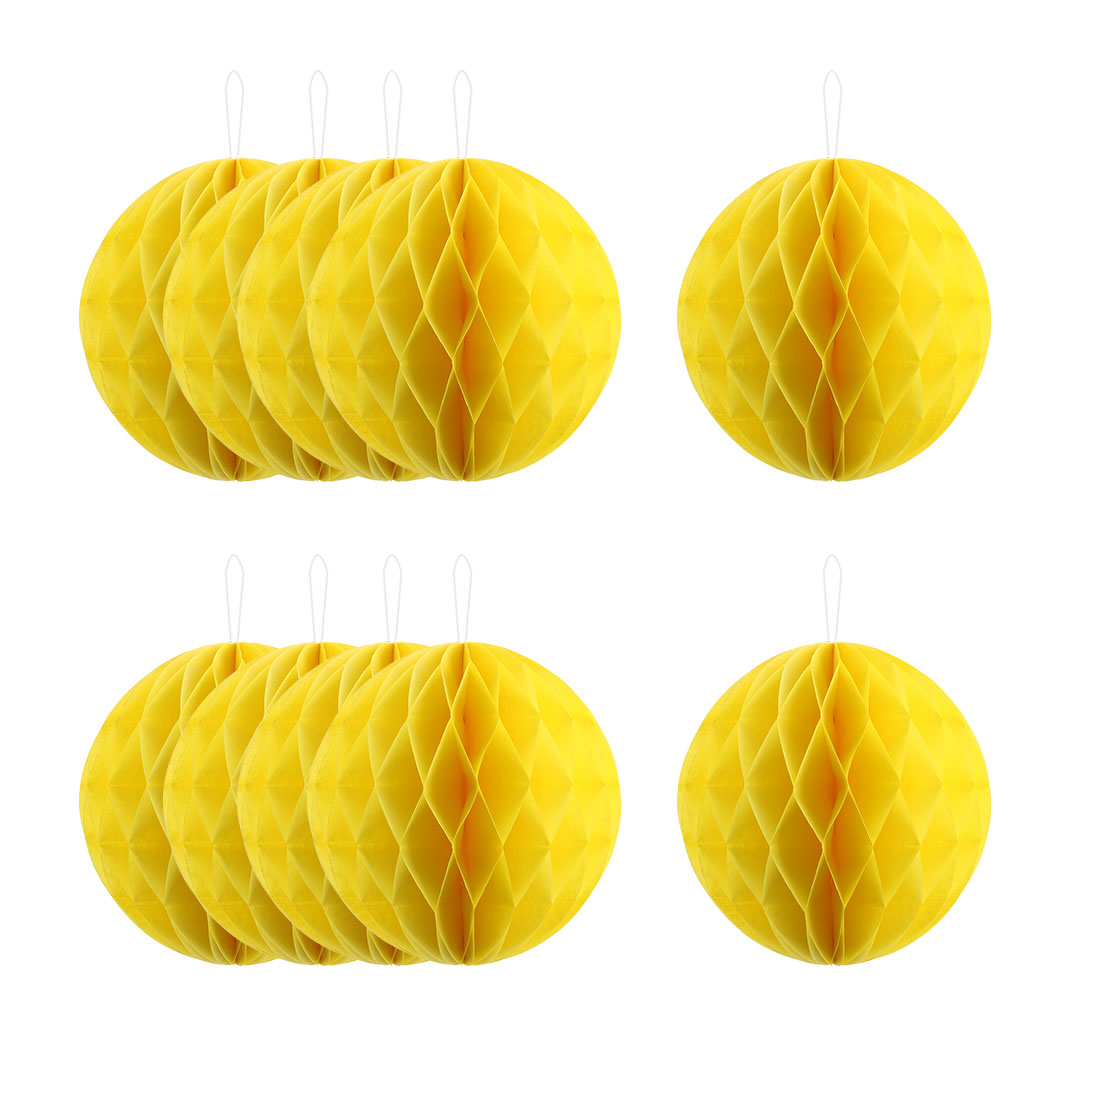 Home Paper Wall Window Hanging Decor Lantern Honeycomb Ball Yellow 10 Inch Dia 10 Pcs